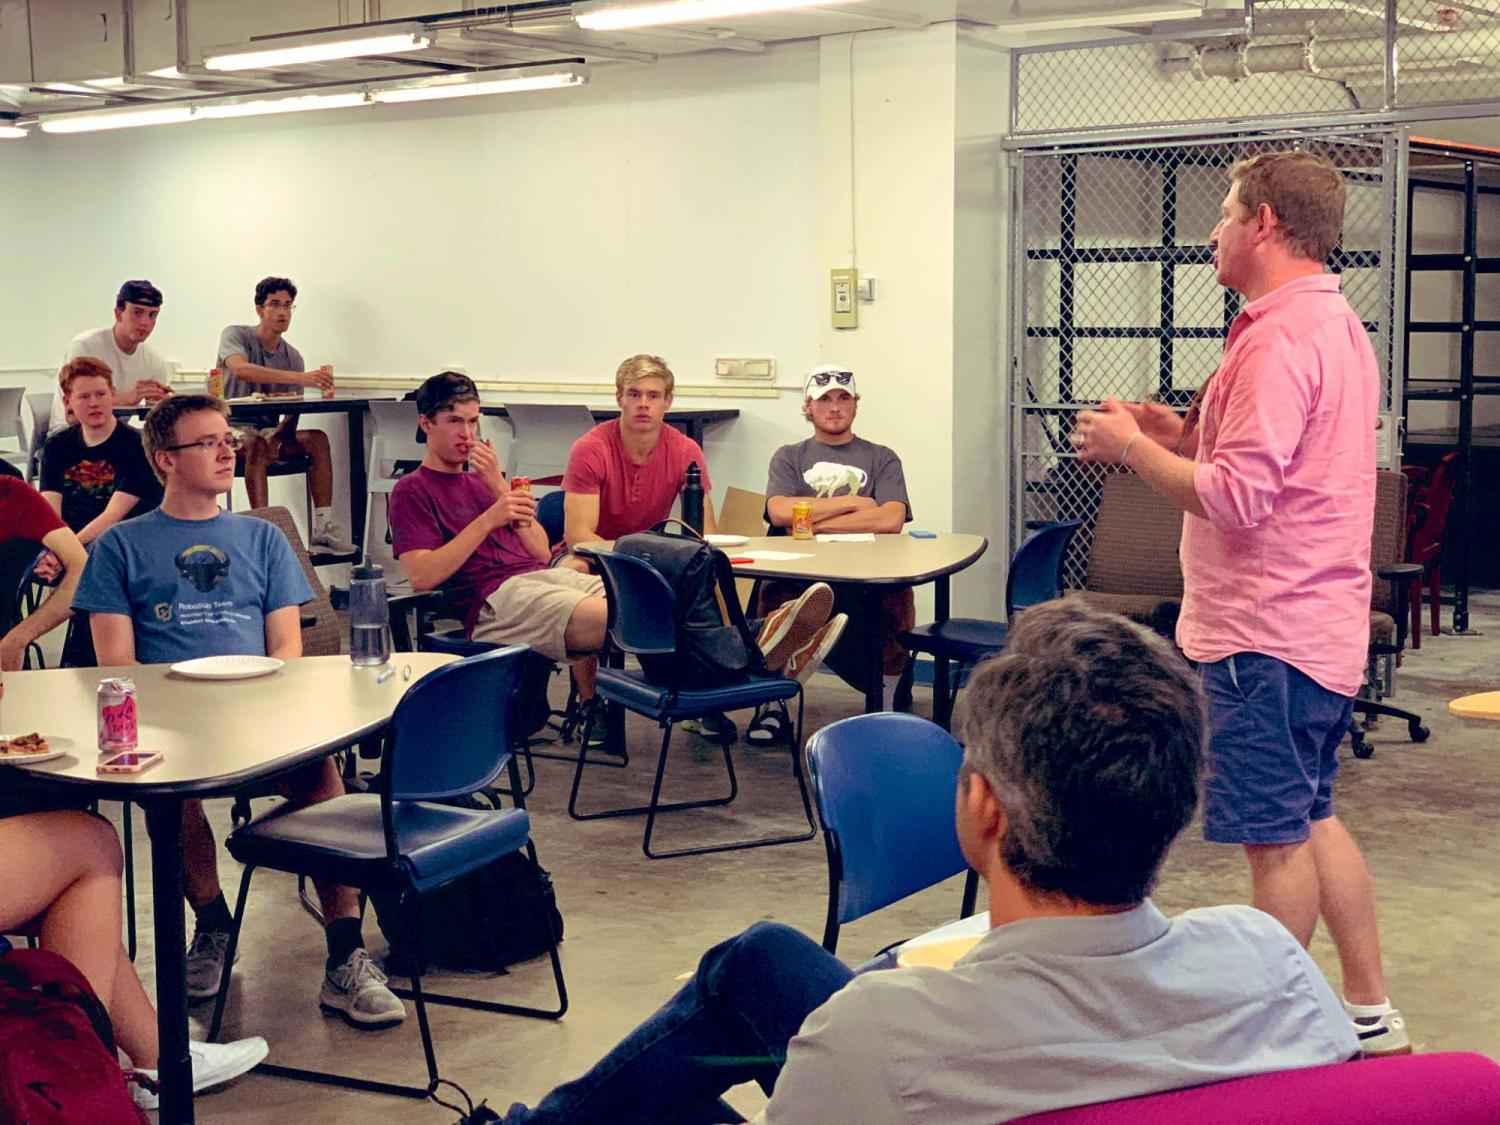 Kyle Judah and students meet founder at Basecamp space